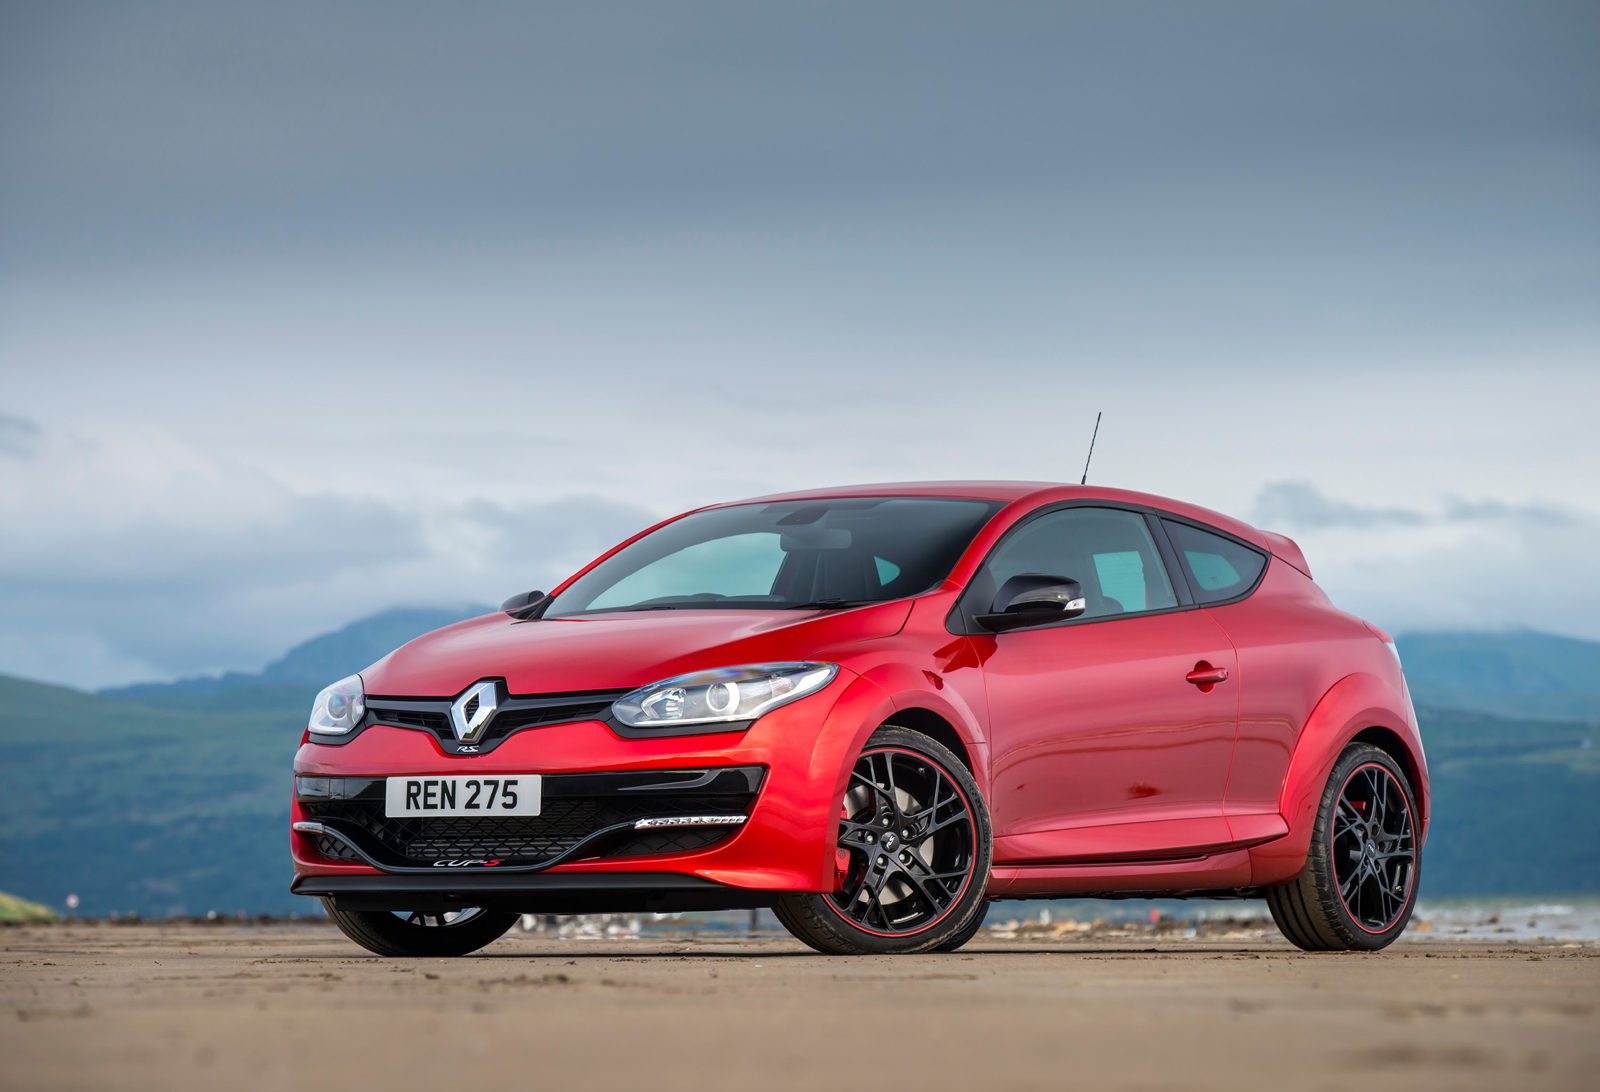 renaultsport likely to extend high performance range beyond megane and clio. Black Bedroom Furniture Sets. Home Design Ideas